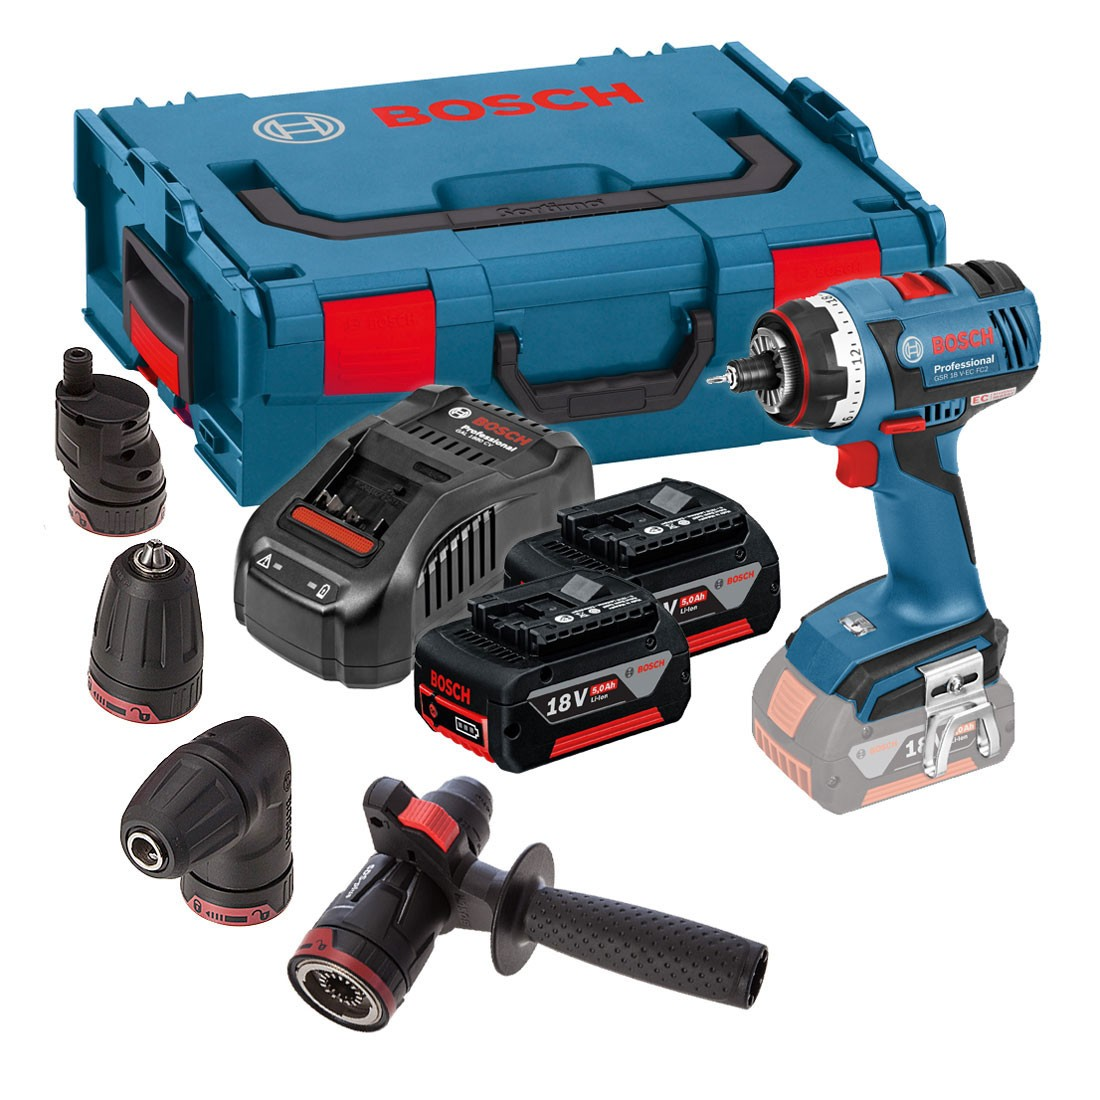 bosch gsr 18 v ec fc2 flexiclick brushless drill driver with 4x chucks 2x 5 0ah batteries gal. Black Bedroom Furniture Sets. Home Design Ideas